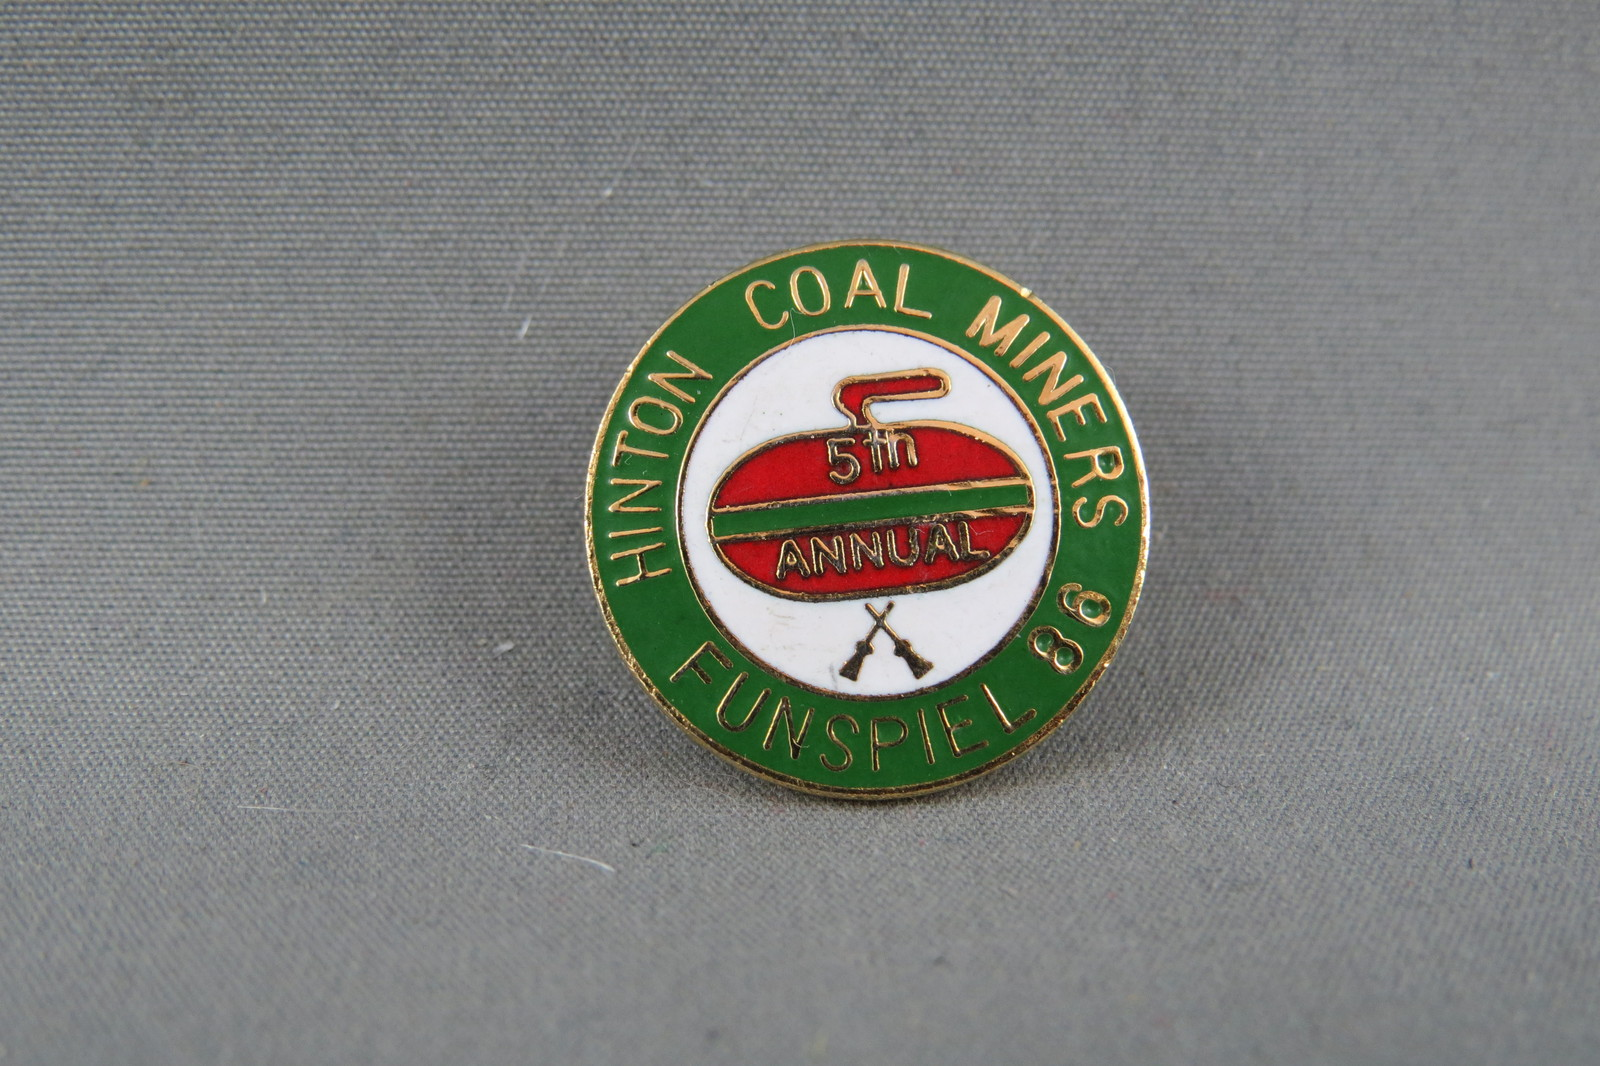 Primary image for Rare Curling Pin - Hinton Coal Miner's Funspeil 1986 - 5th Annual